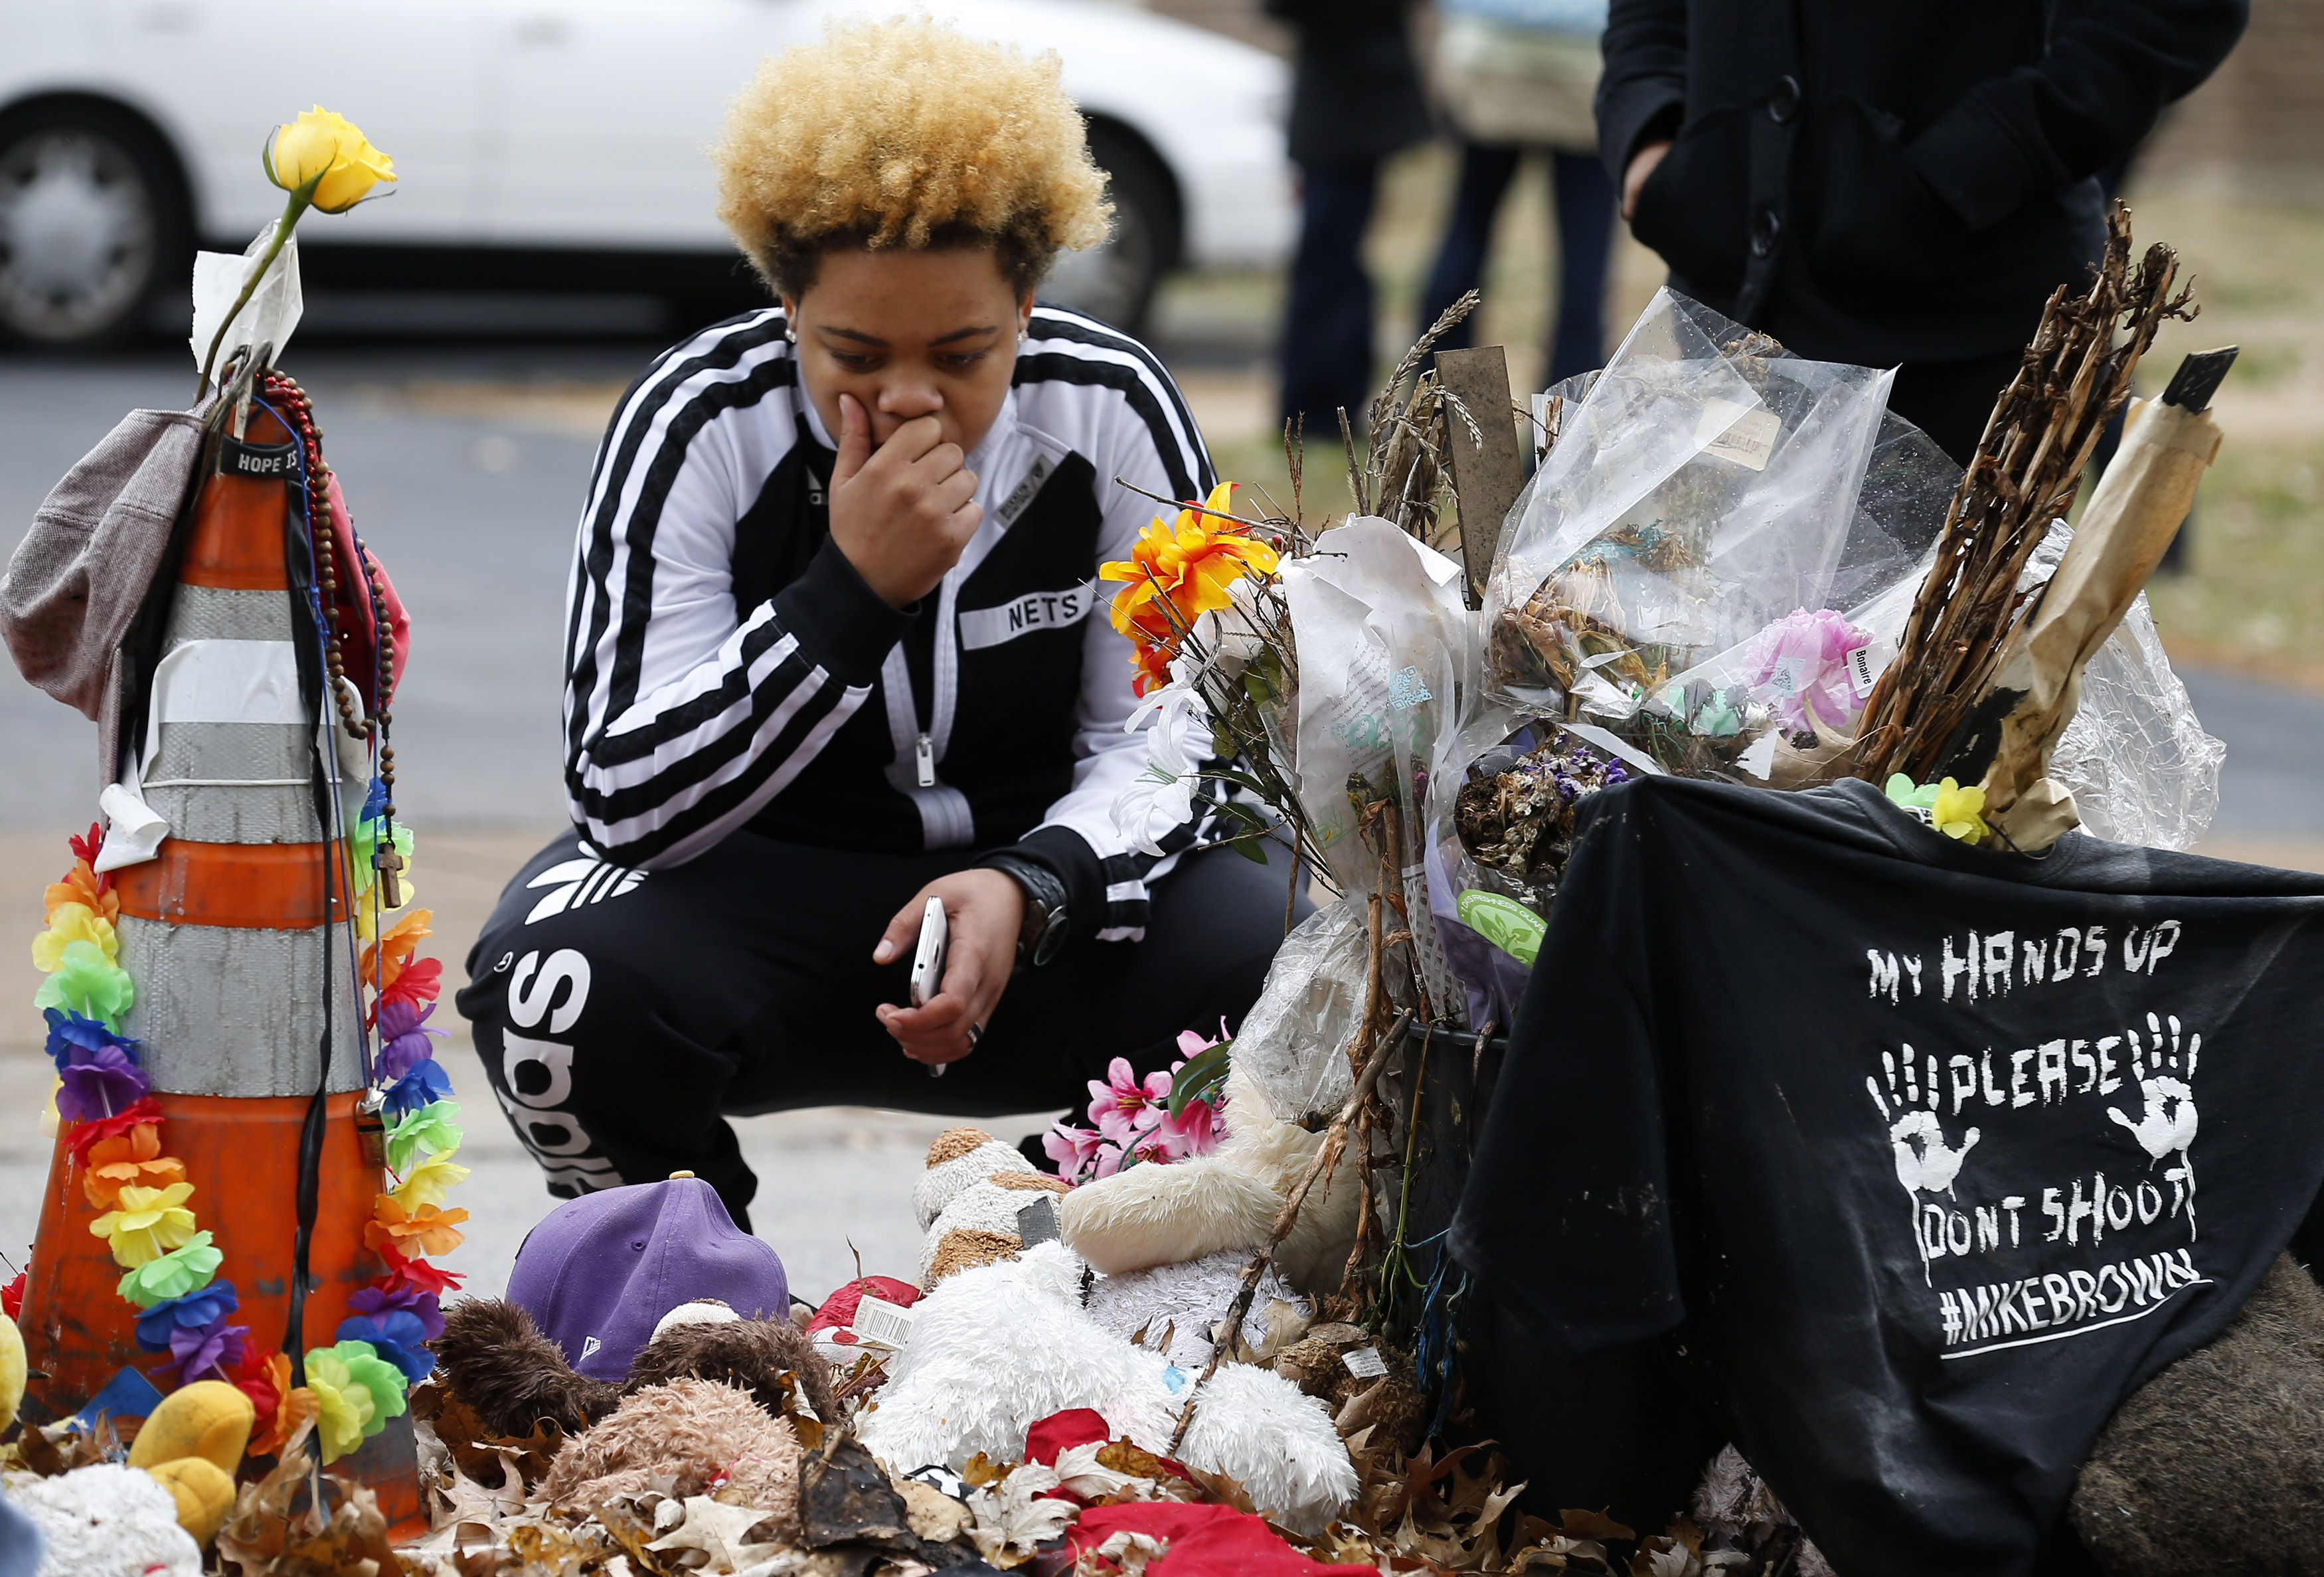 A woman stops to visit the memorial set up where Michael Brown was shot and killed in Ferguson, Missouri, Nov. 22, 2014.